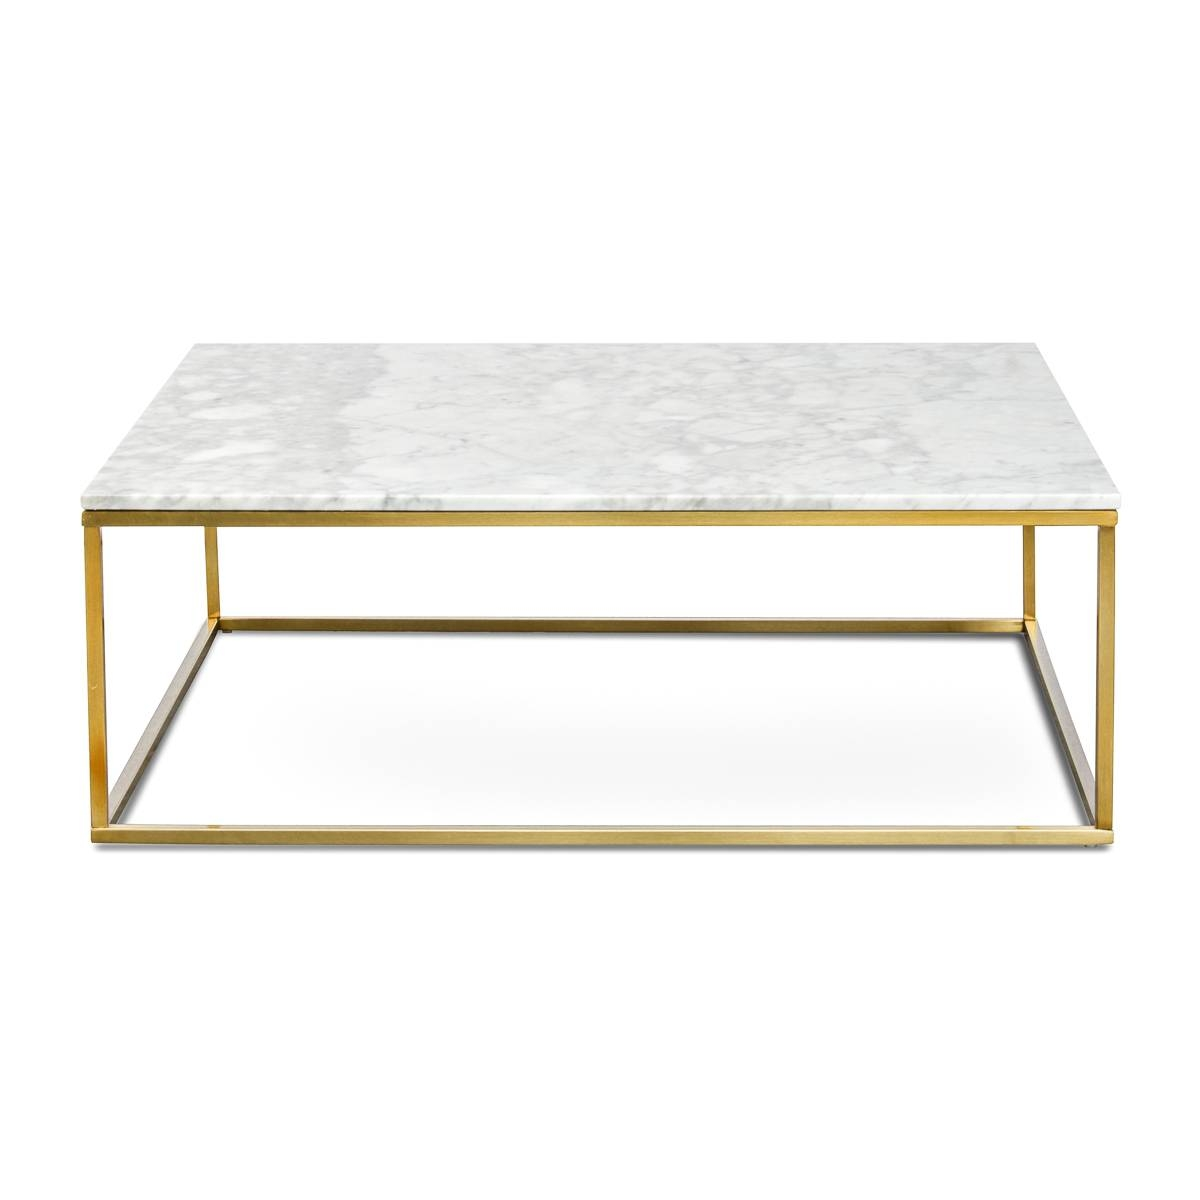 Toronto Square 100Cm White Marble Coffee Table | Interior Secrets with regard to White Marble Coffee Tables (Image 29 of 30)